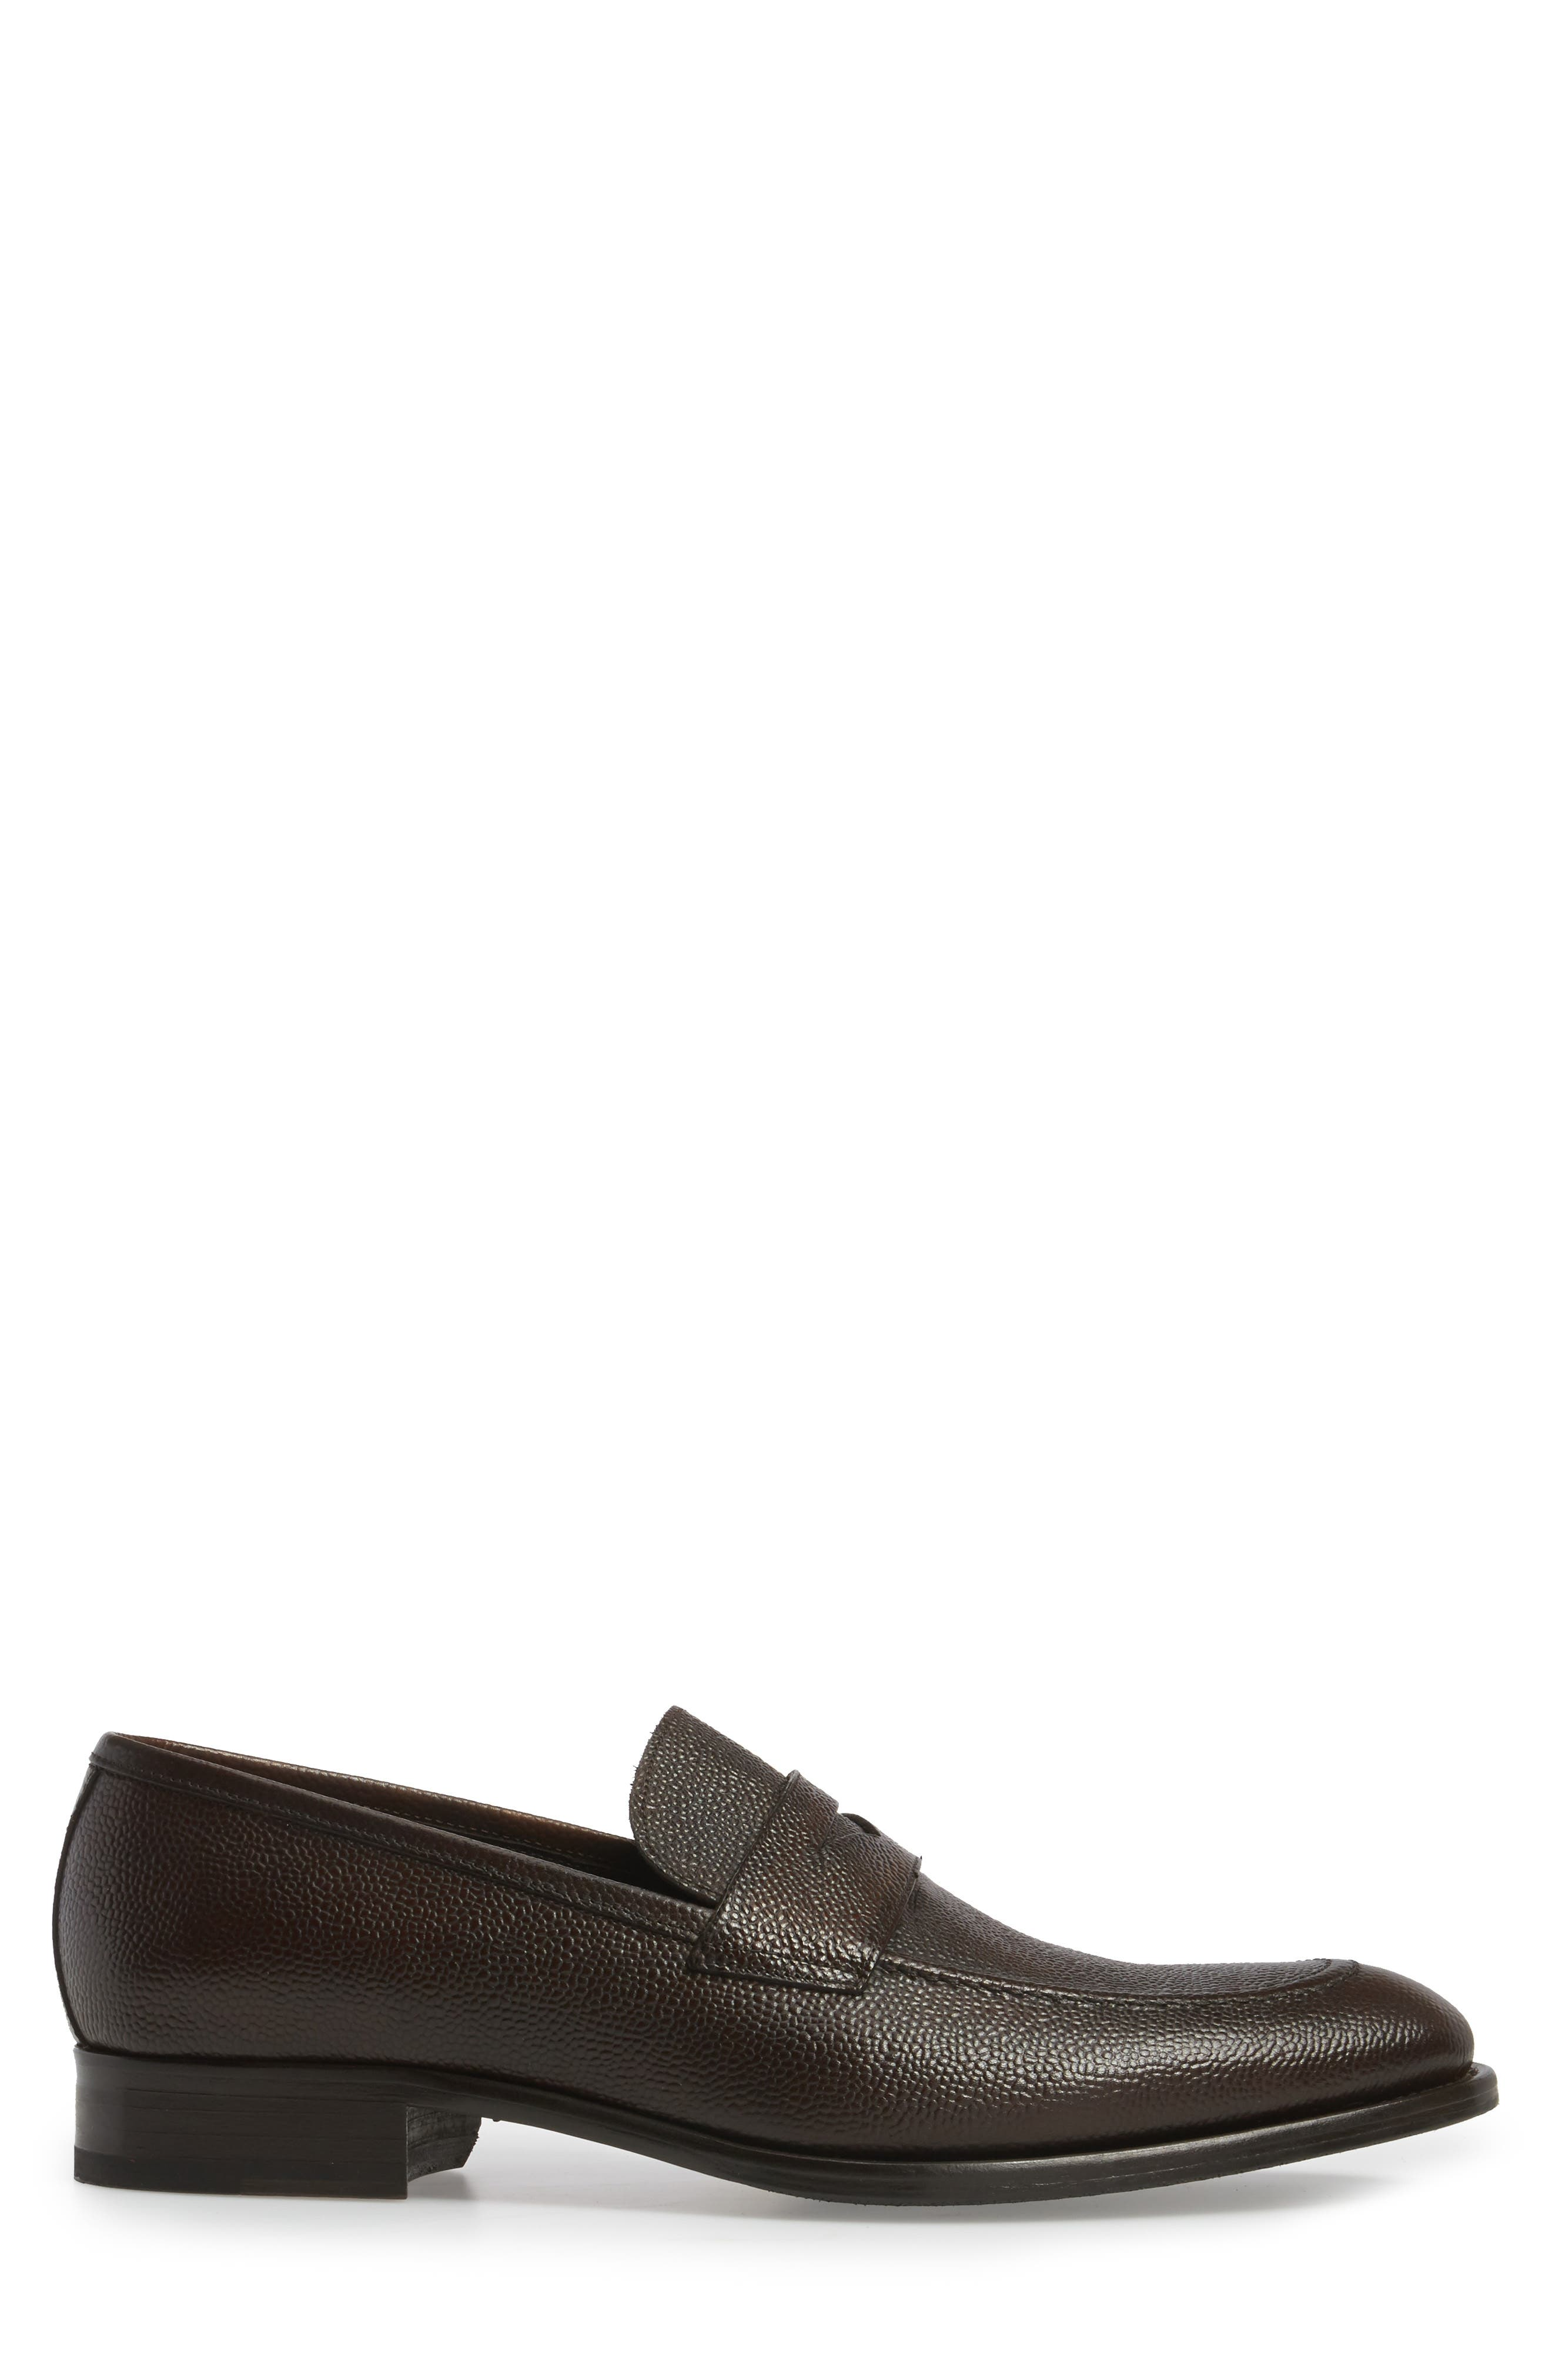 James Penny Loafer,                             Alternate thumbnail 3, color,                             Brown Leather